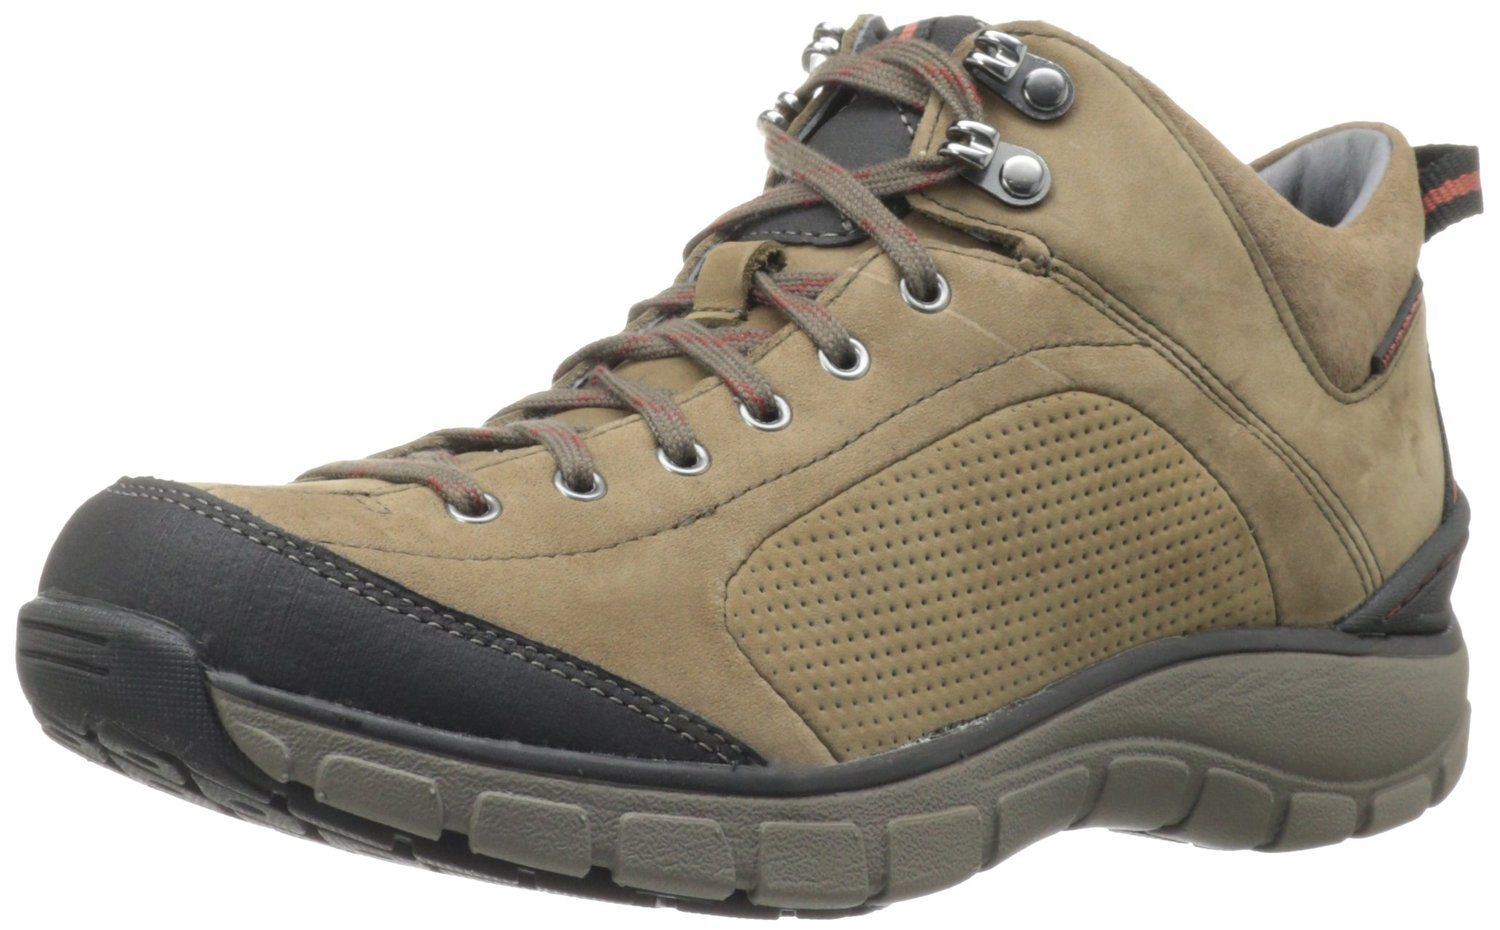 b2dcbfd035a Clarks Women's Wave Hiker Ankle Boot ** Check this awesome product ...